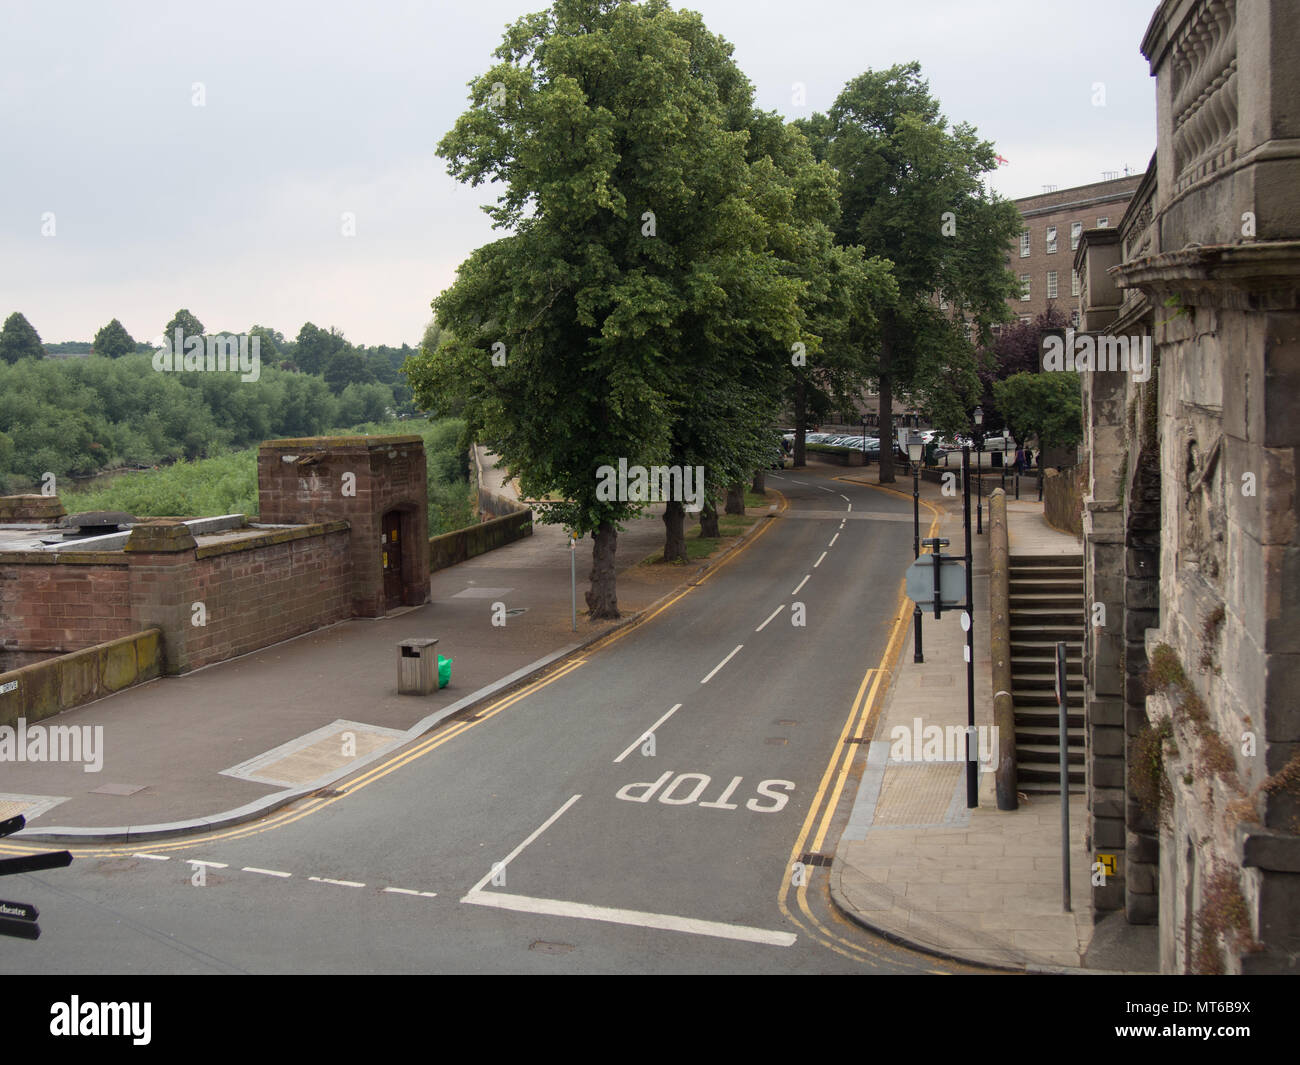 Castle drive, street without cars in Chester, England, UK. - Stock Image